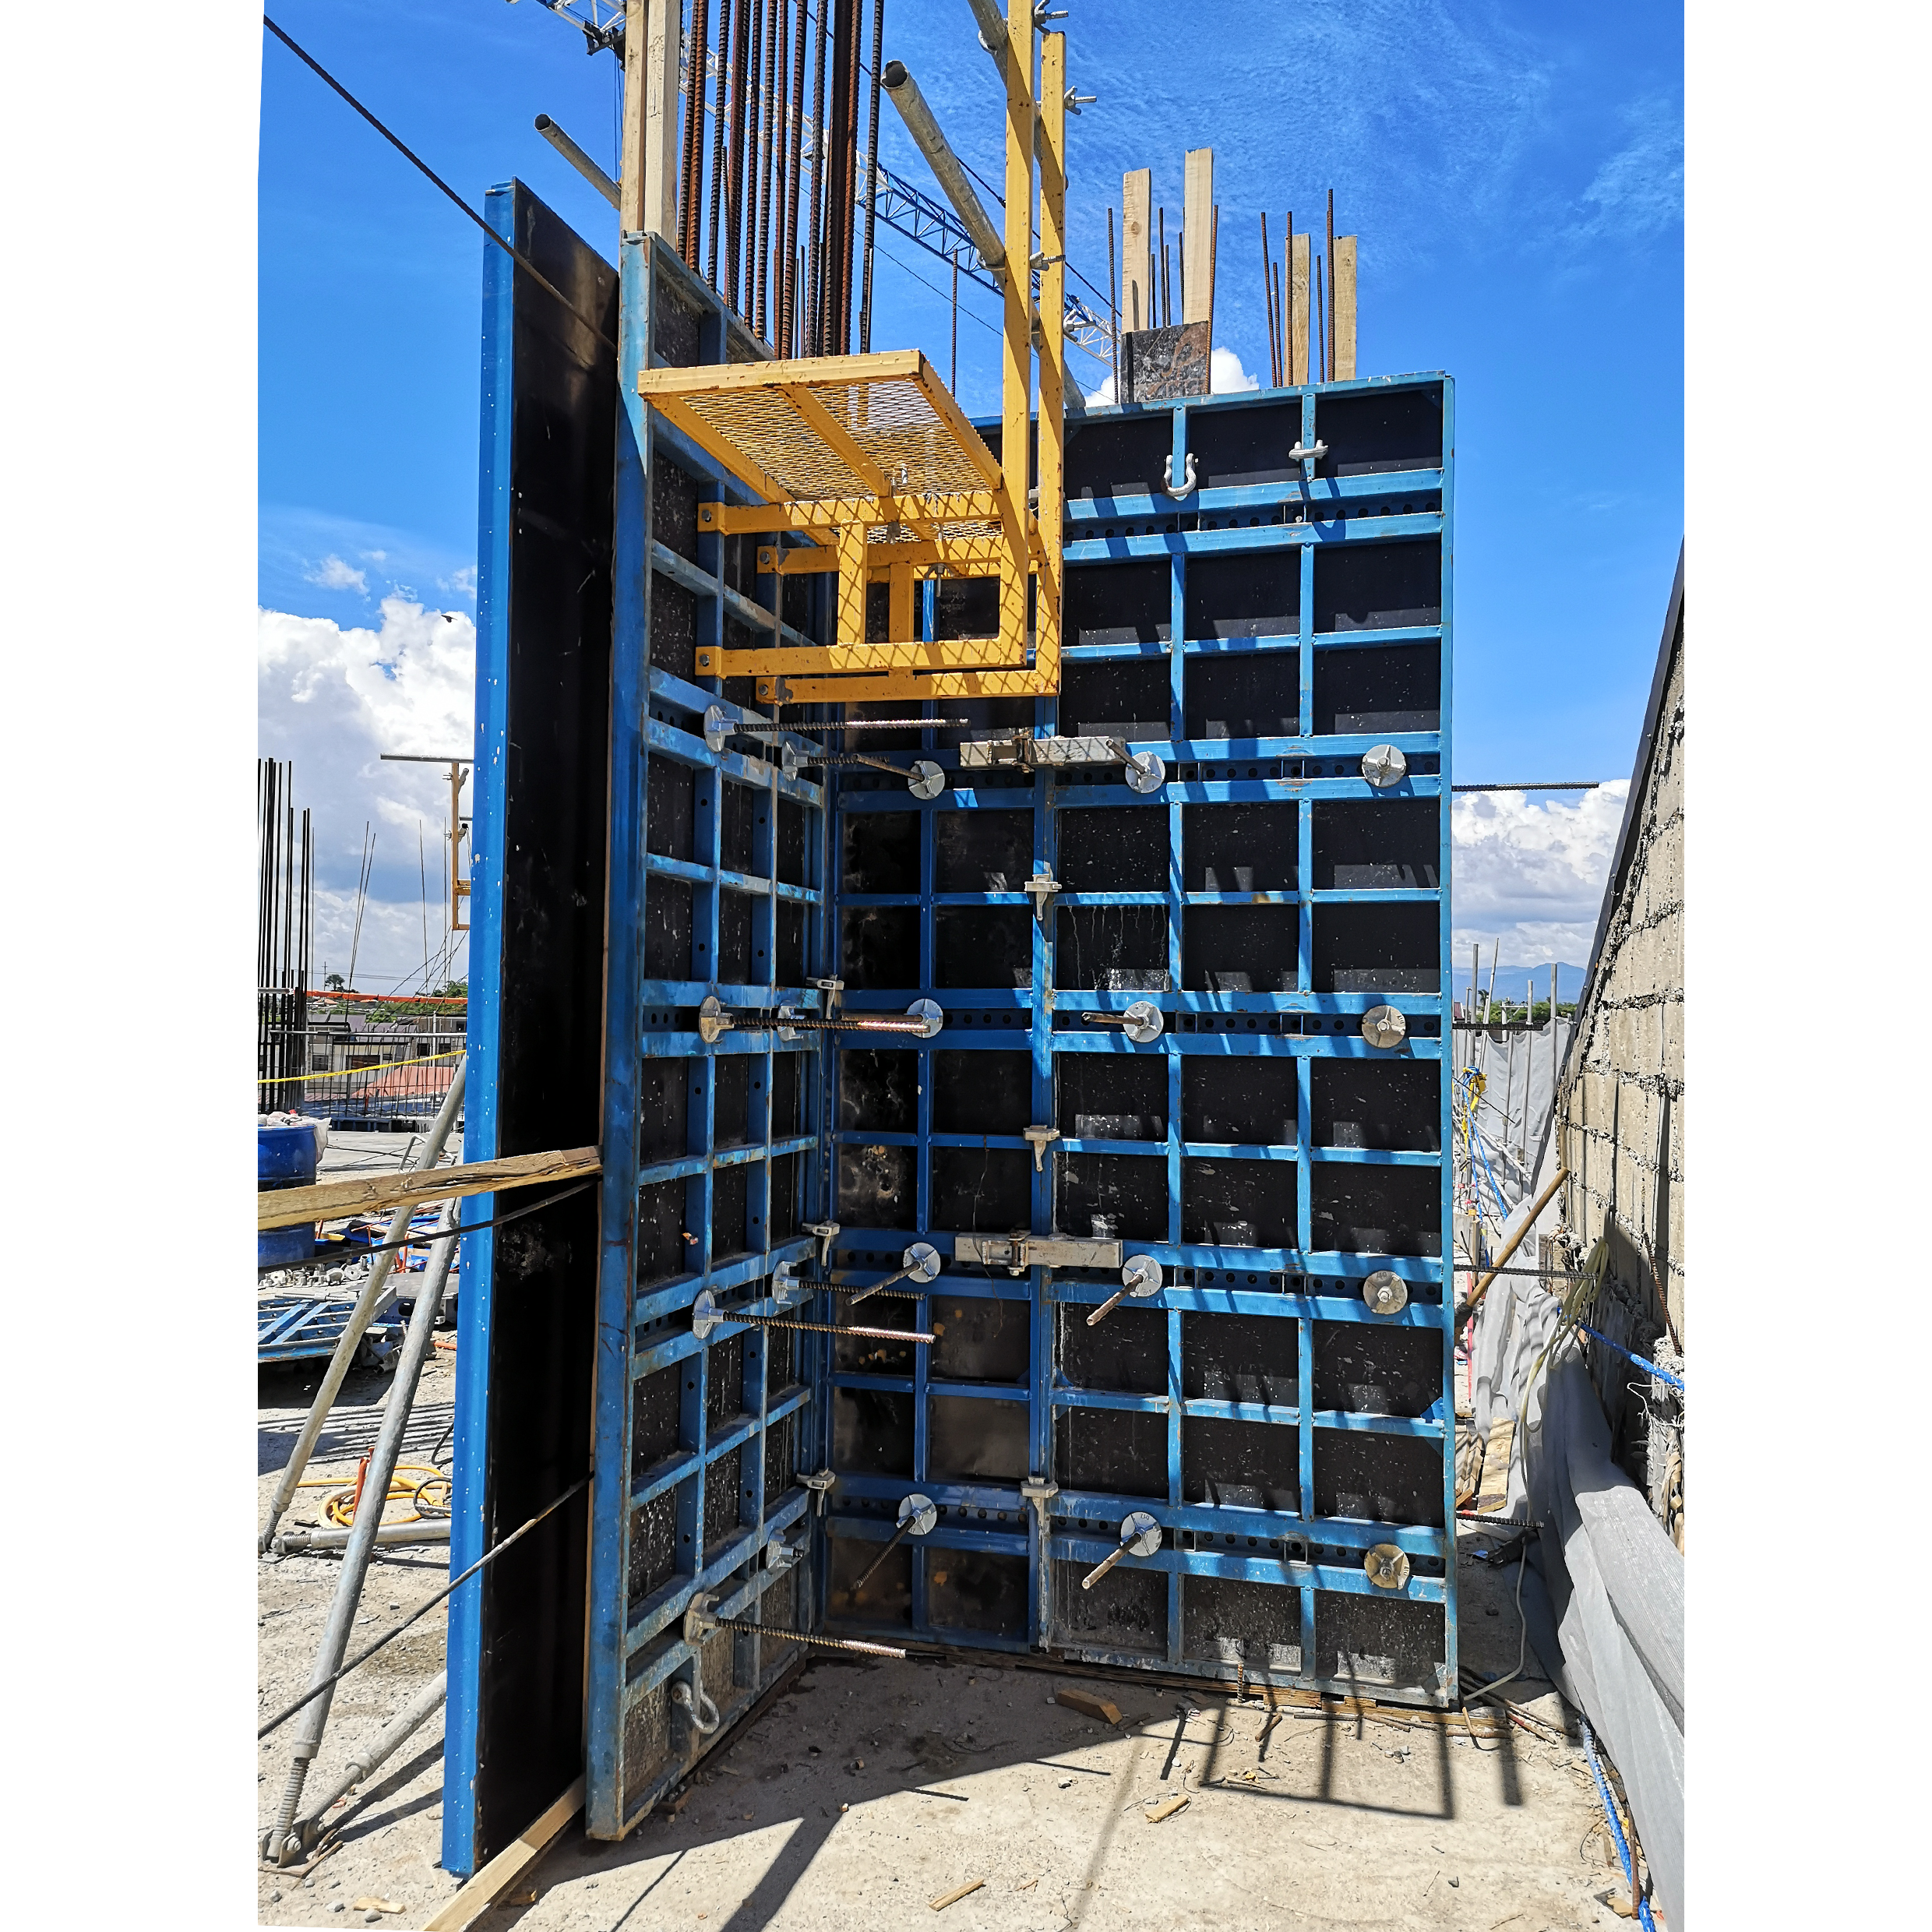 Project: Proposed: 18-Storey Residential Condominium Project Location: Lapu-lapu City, Cebu Product / Equipment Used: B-form System for Column and Wall